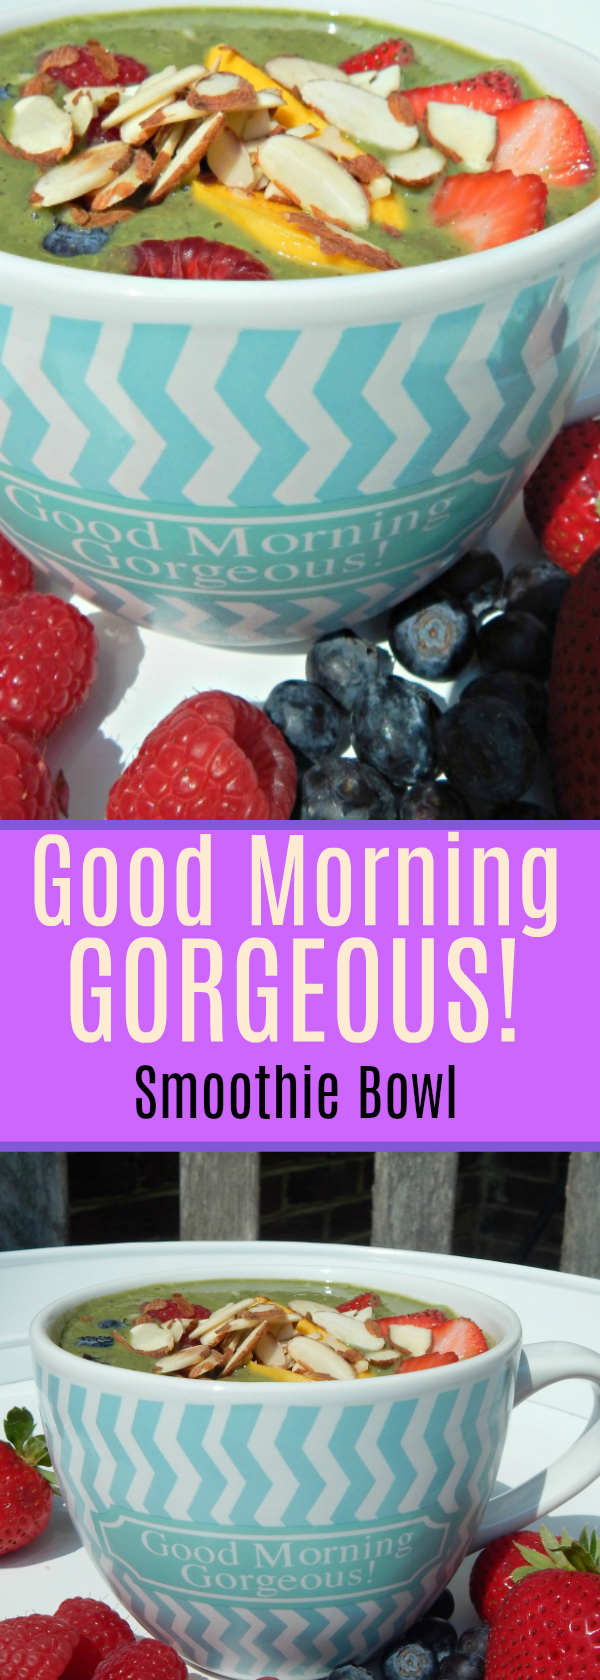 Good Morning Gorgeous Smoothie Bowl! Get your day Kickstarted and your Skin Glowing with this Delicious Gluten and Dairy Free bowl of goodness! #smoothiebowl